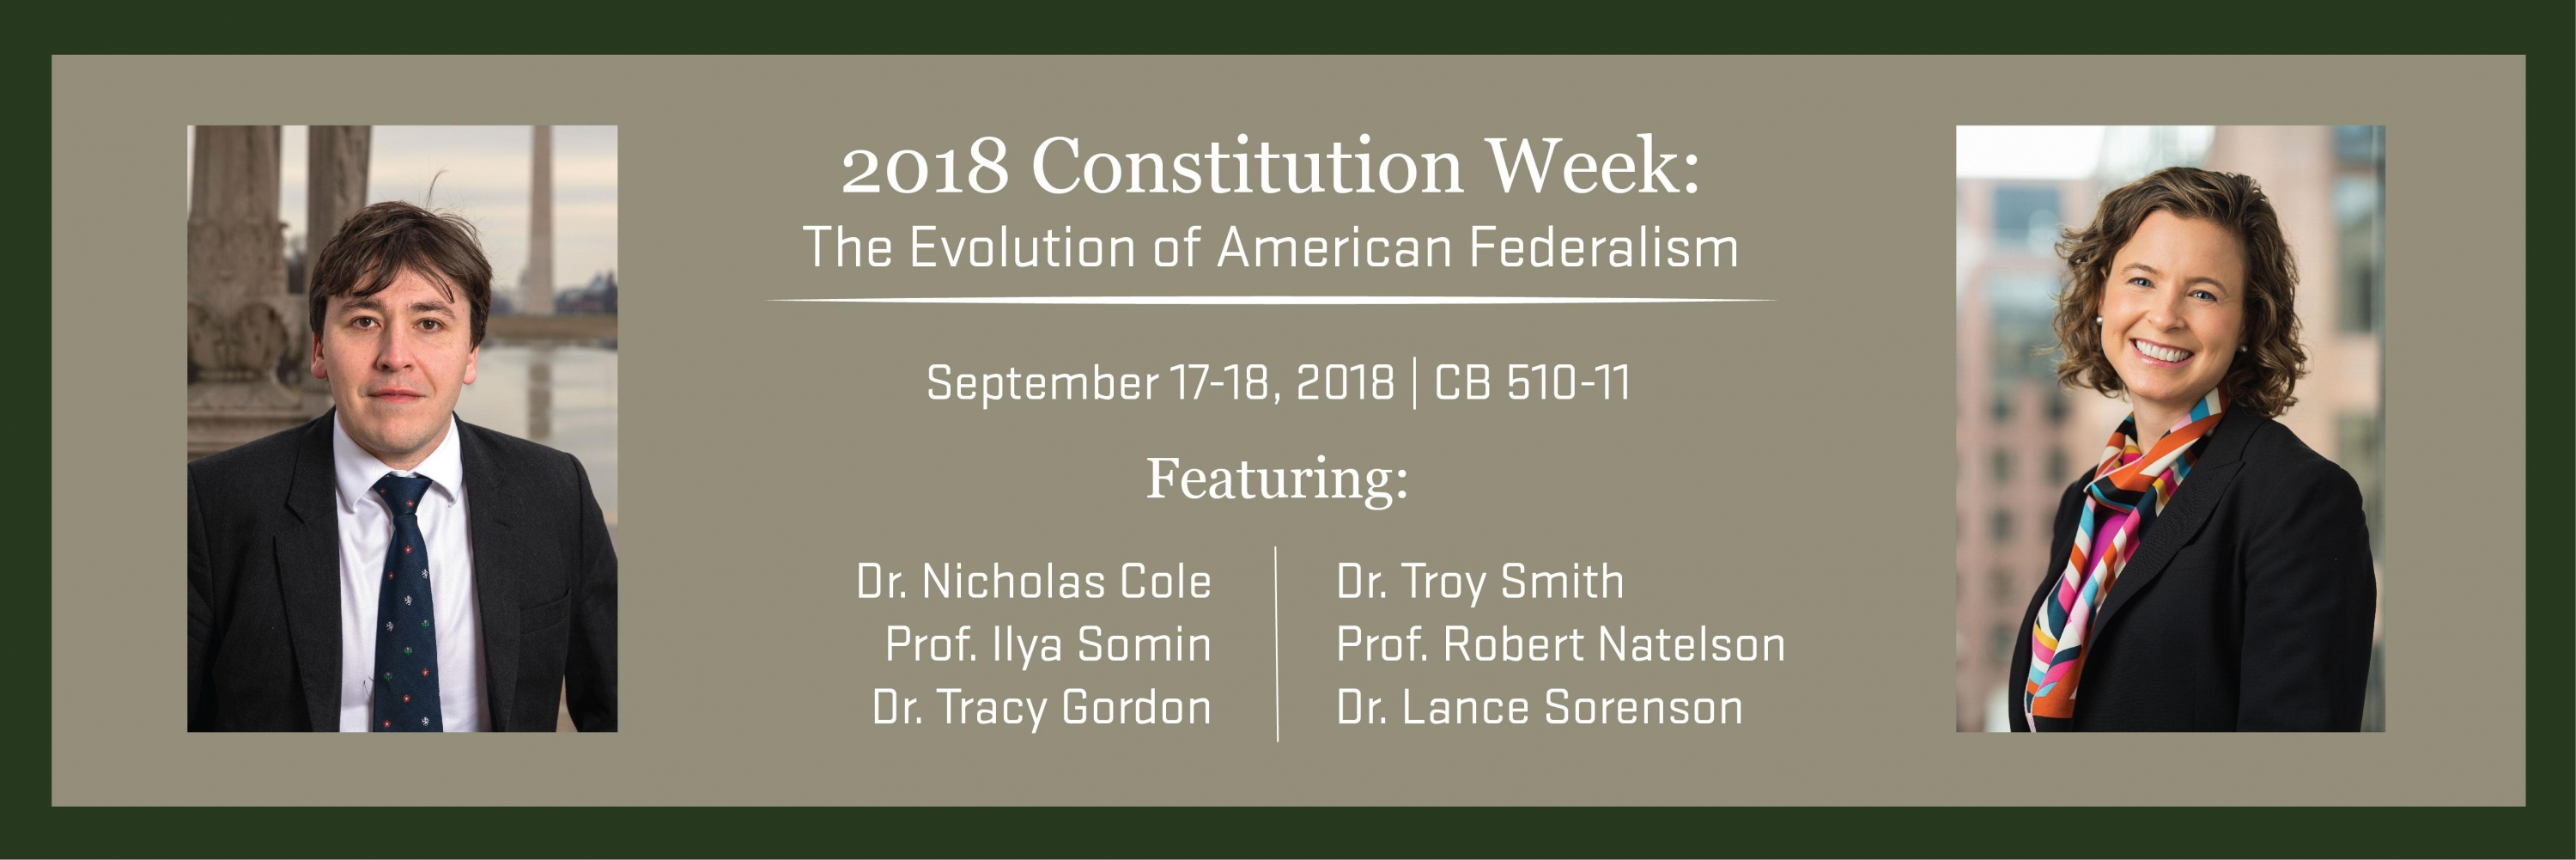 2018 Constitution Week Conference